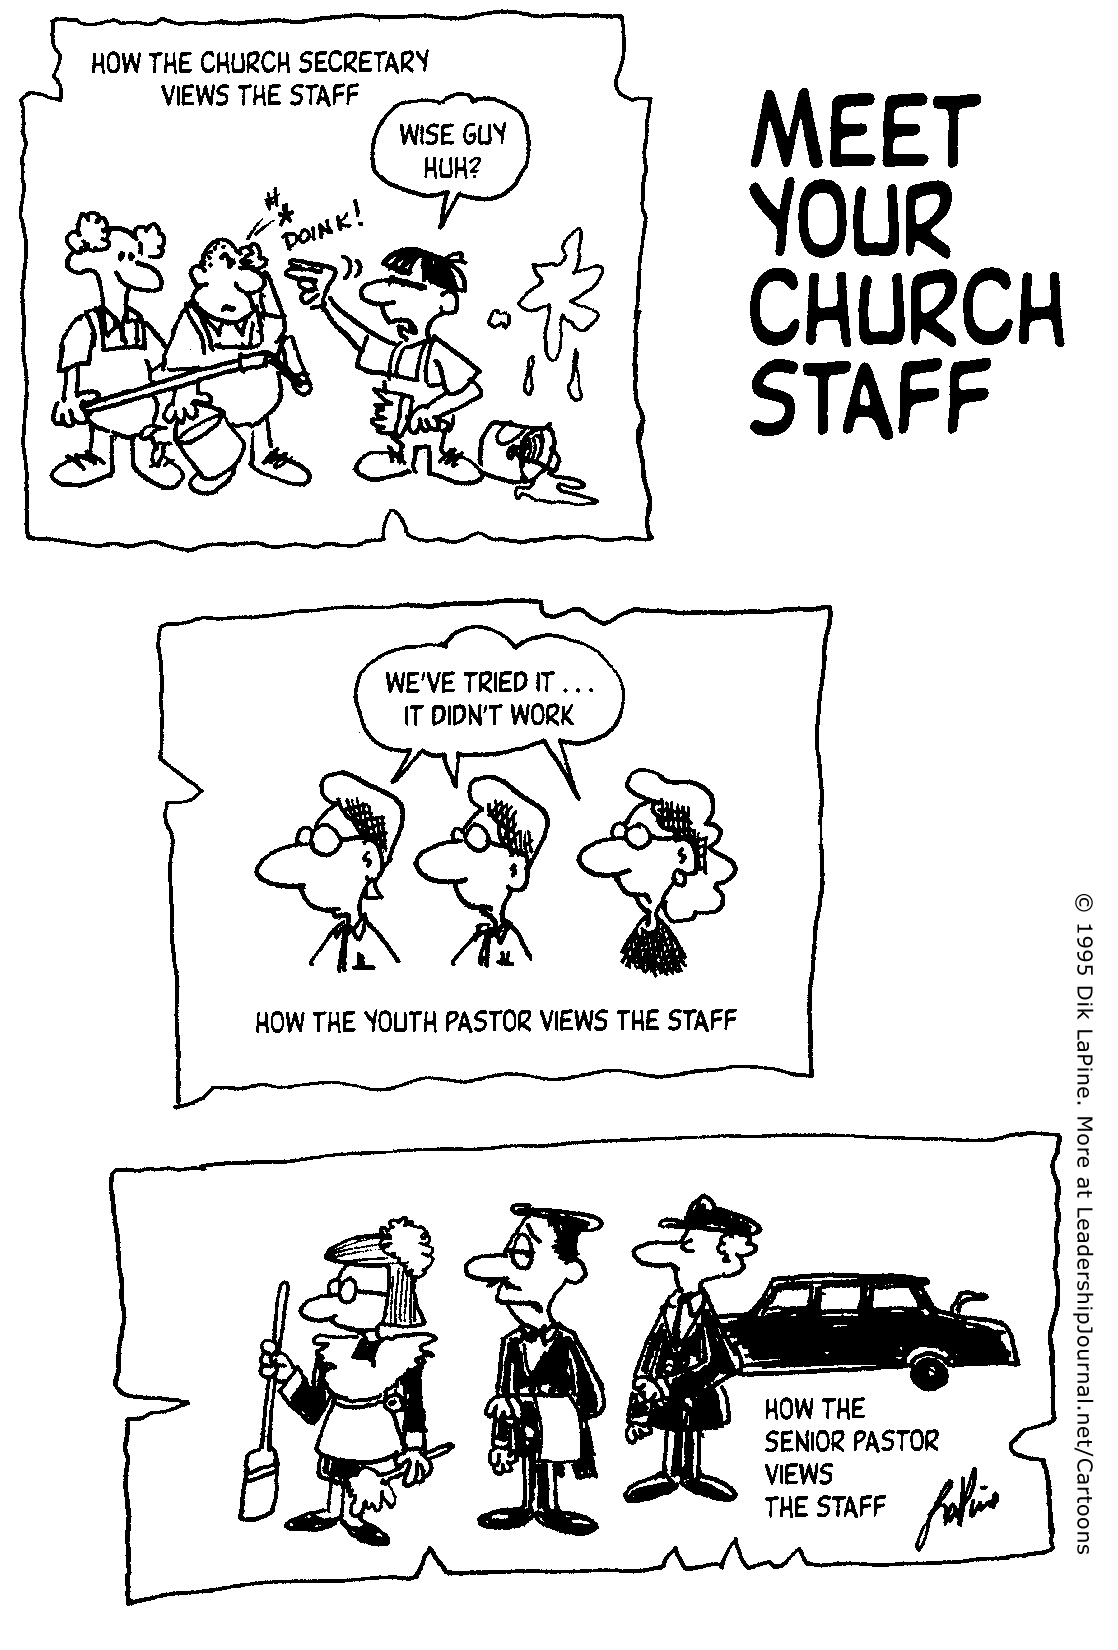 How People View Church Staff